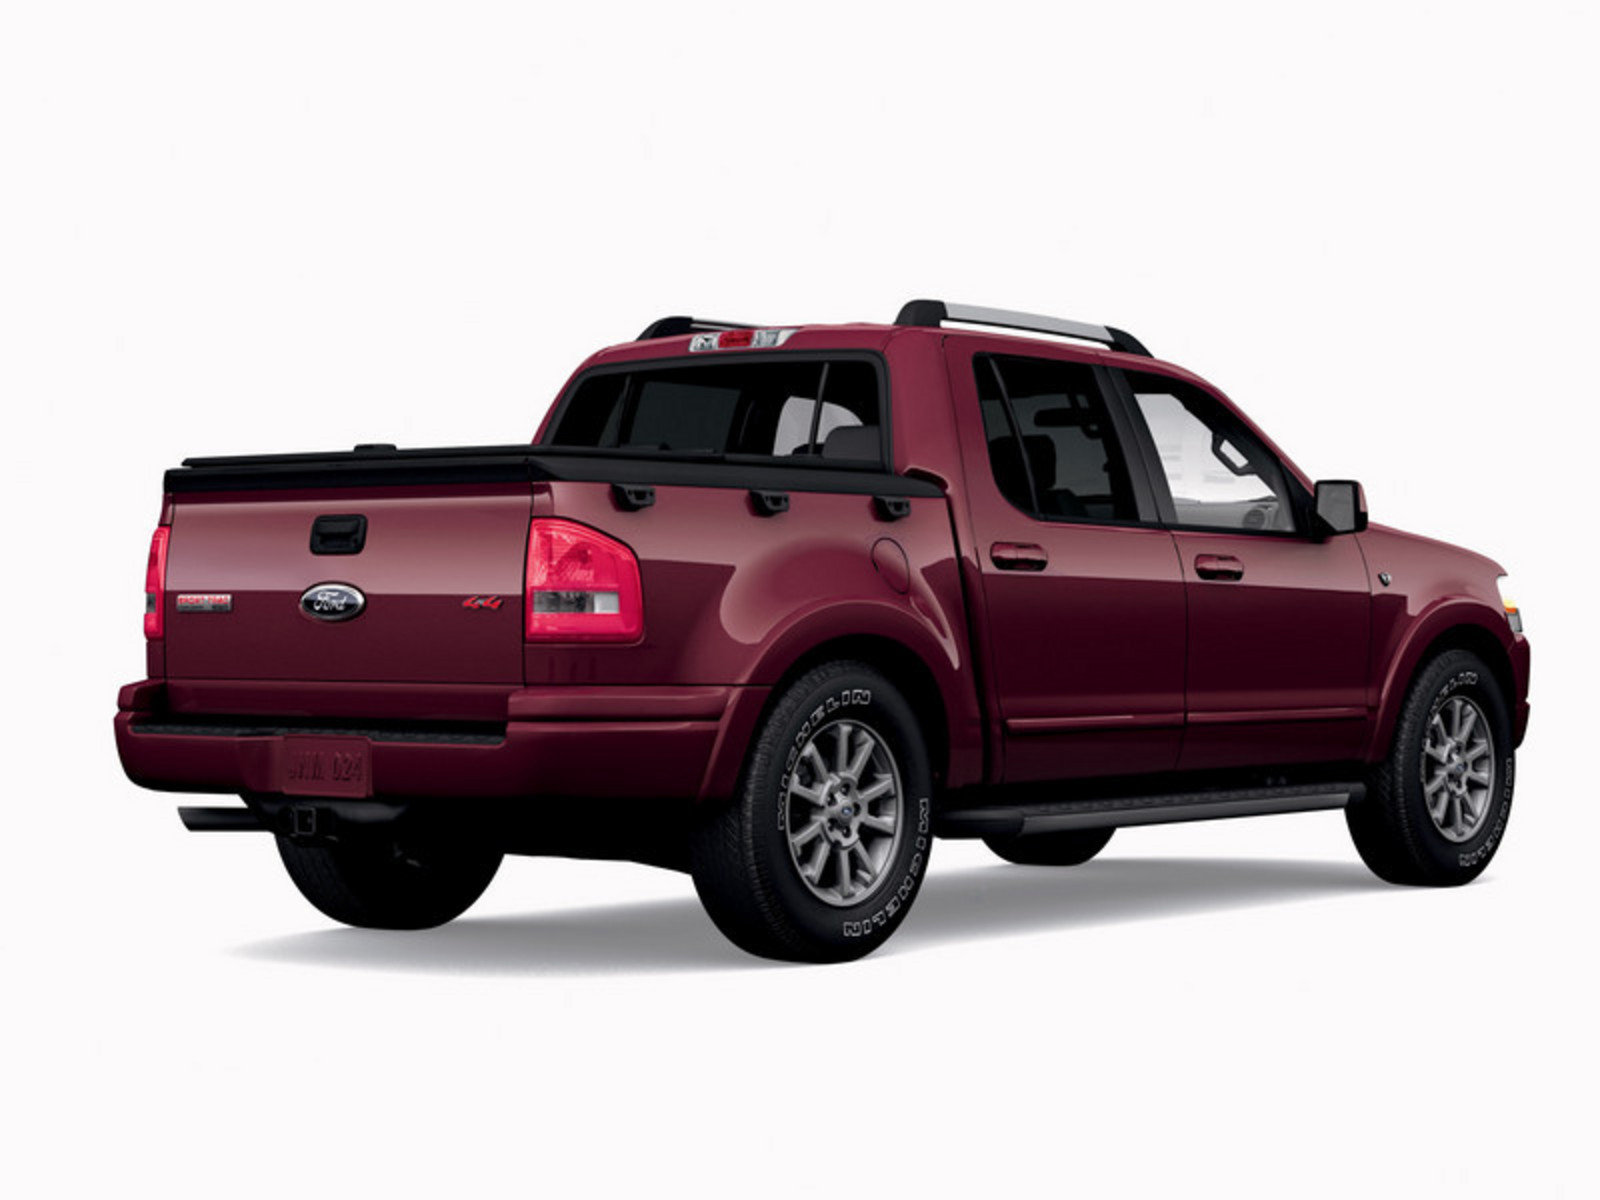 2007 ford explorer sport trac picture 45466 car review top speed. Cars Review. Best American Auto & Cars Review